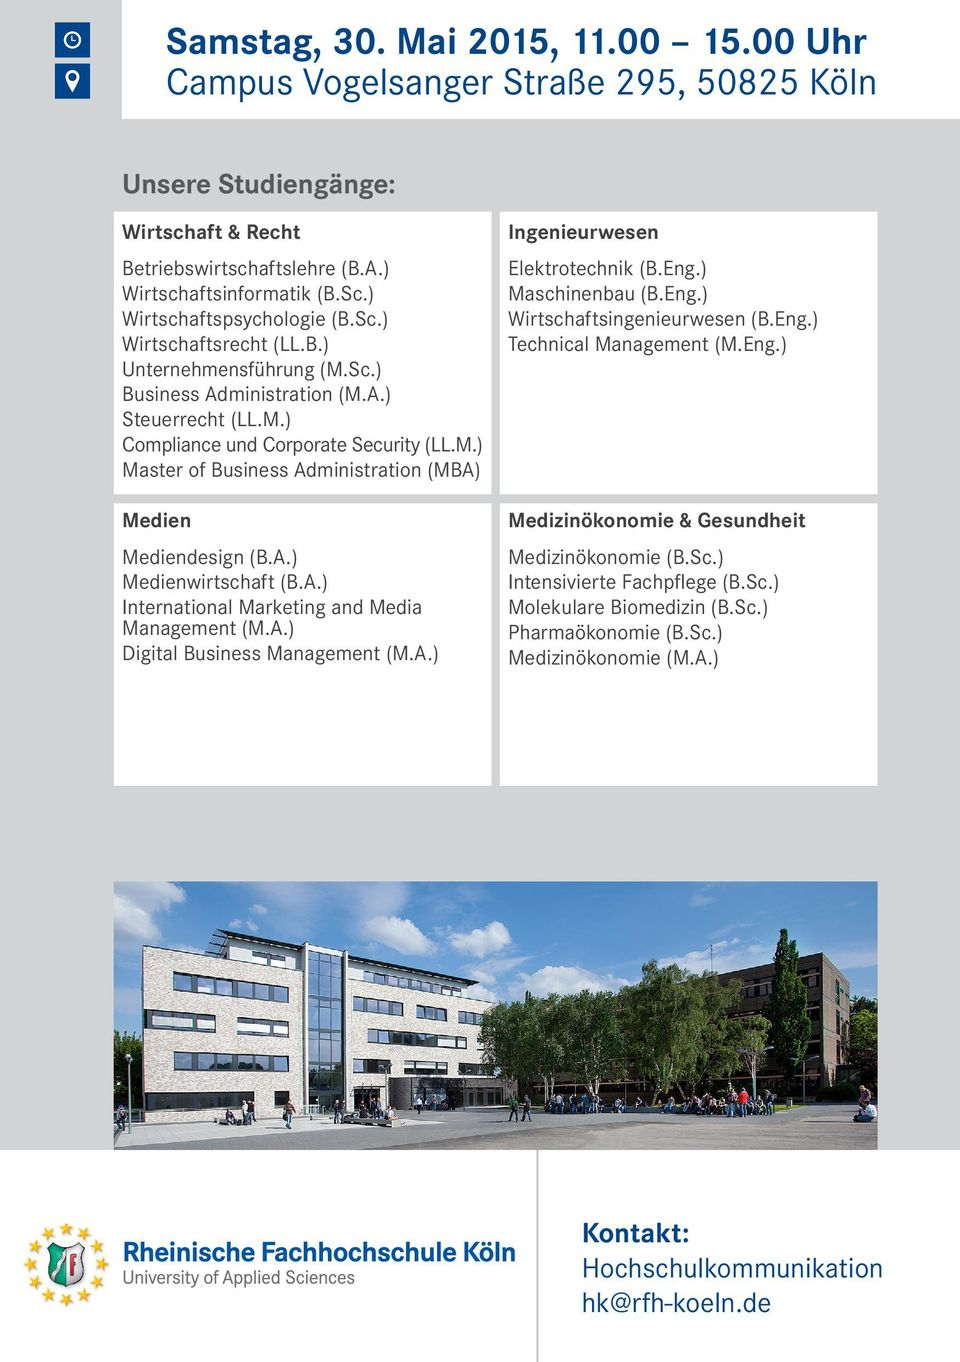 A.) Medienwirtschaft (B.A.) International Marketing and Media Management (M.A.) Digital Business Management (M.A.) Ingenieurwesen Elektrotechnik (B.Eng.) Maschinenbau (B.Eng.) Wirtschaftsingenieurwesen (B.